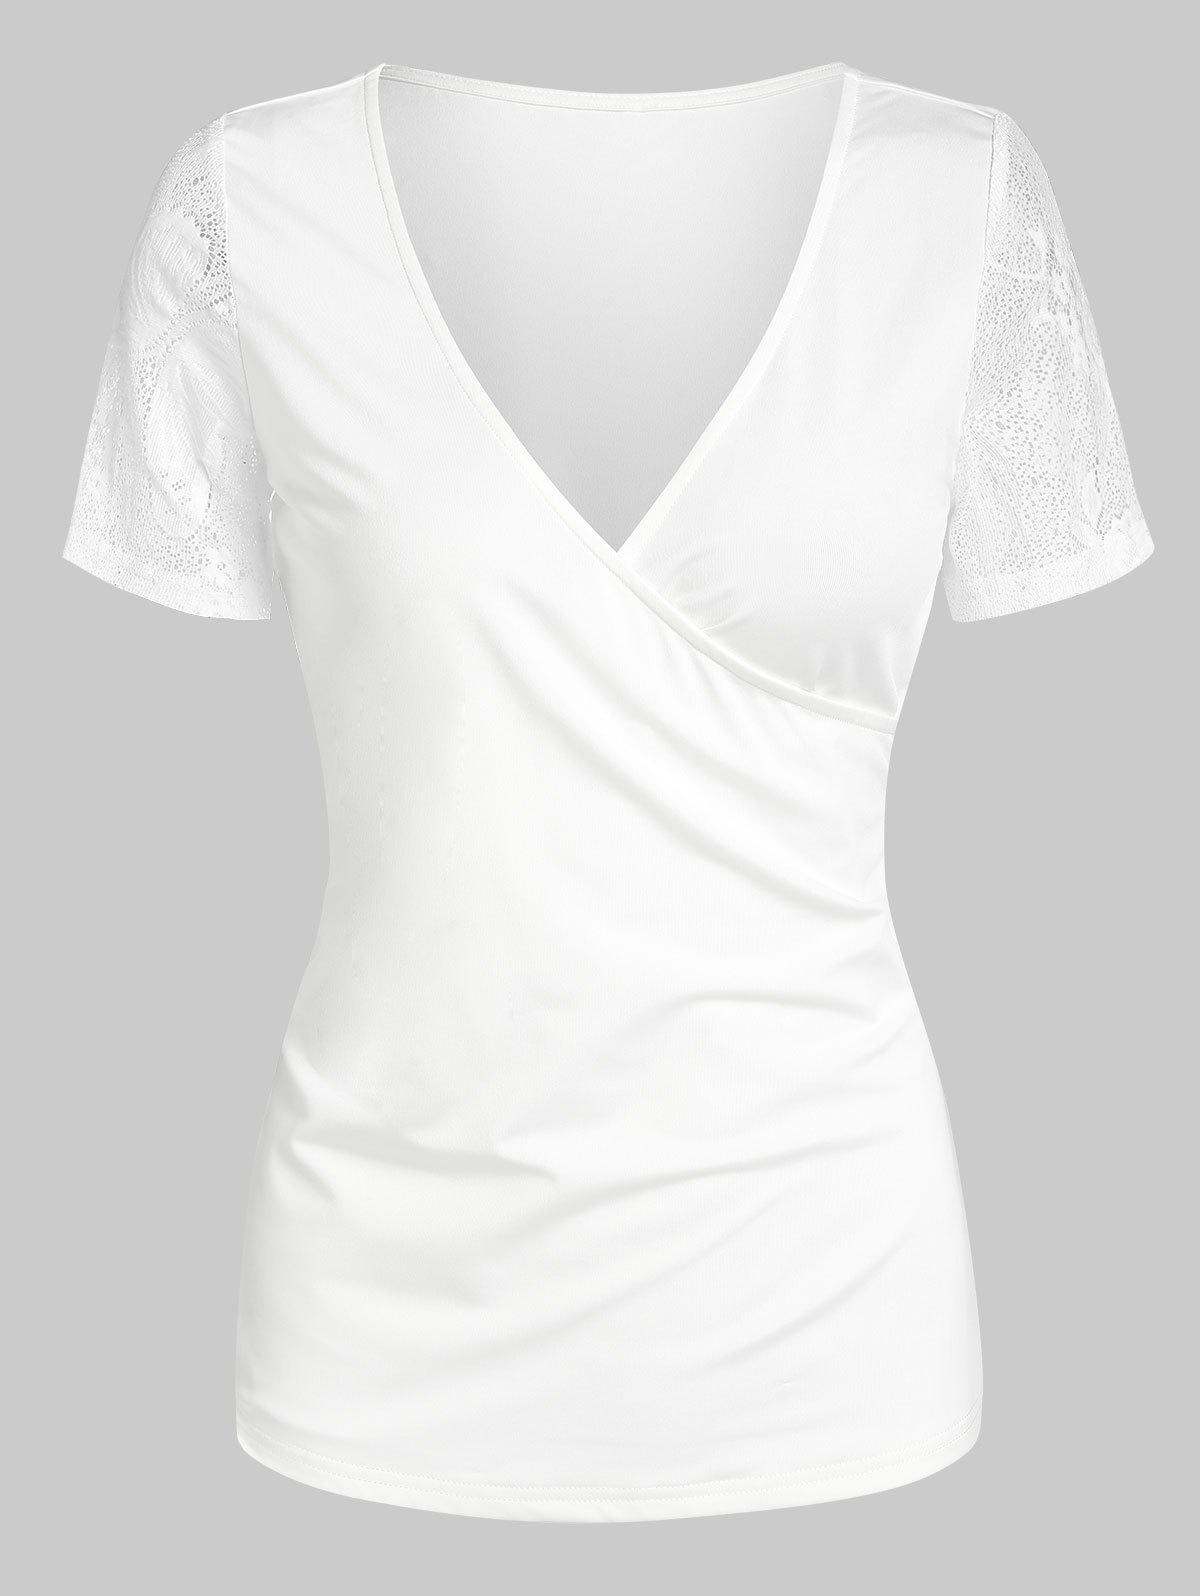 V Neck Lace Insert Surplice T-shirt - WHITE XXL